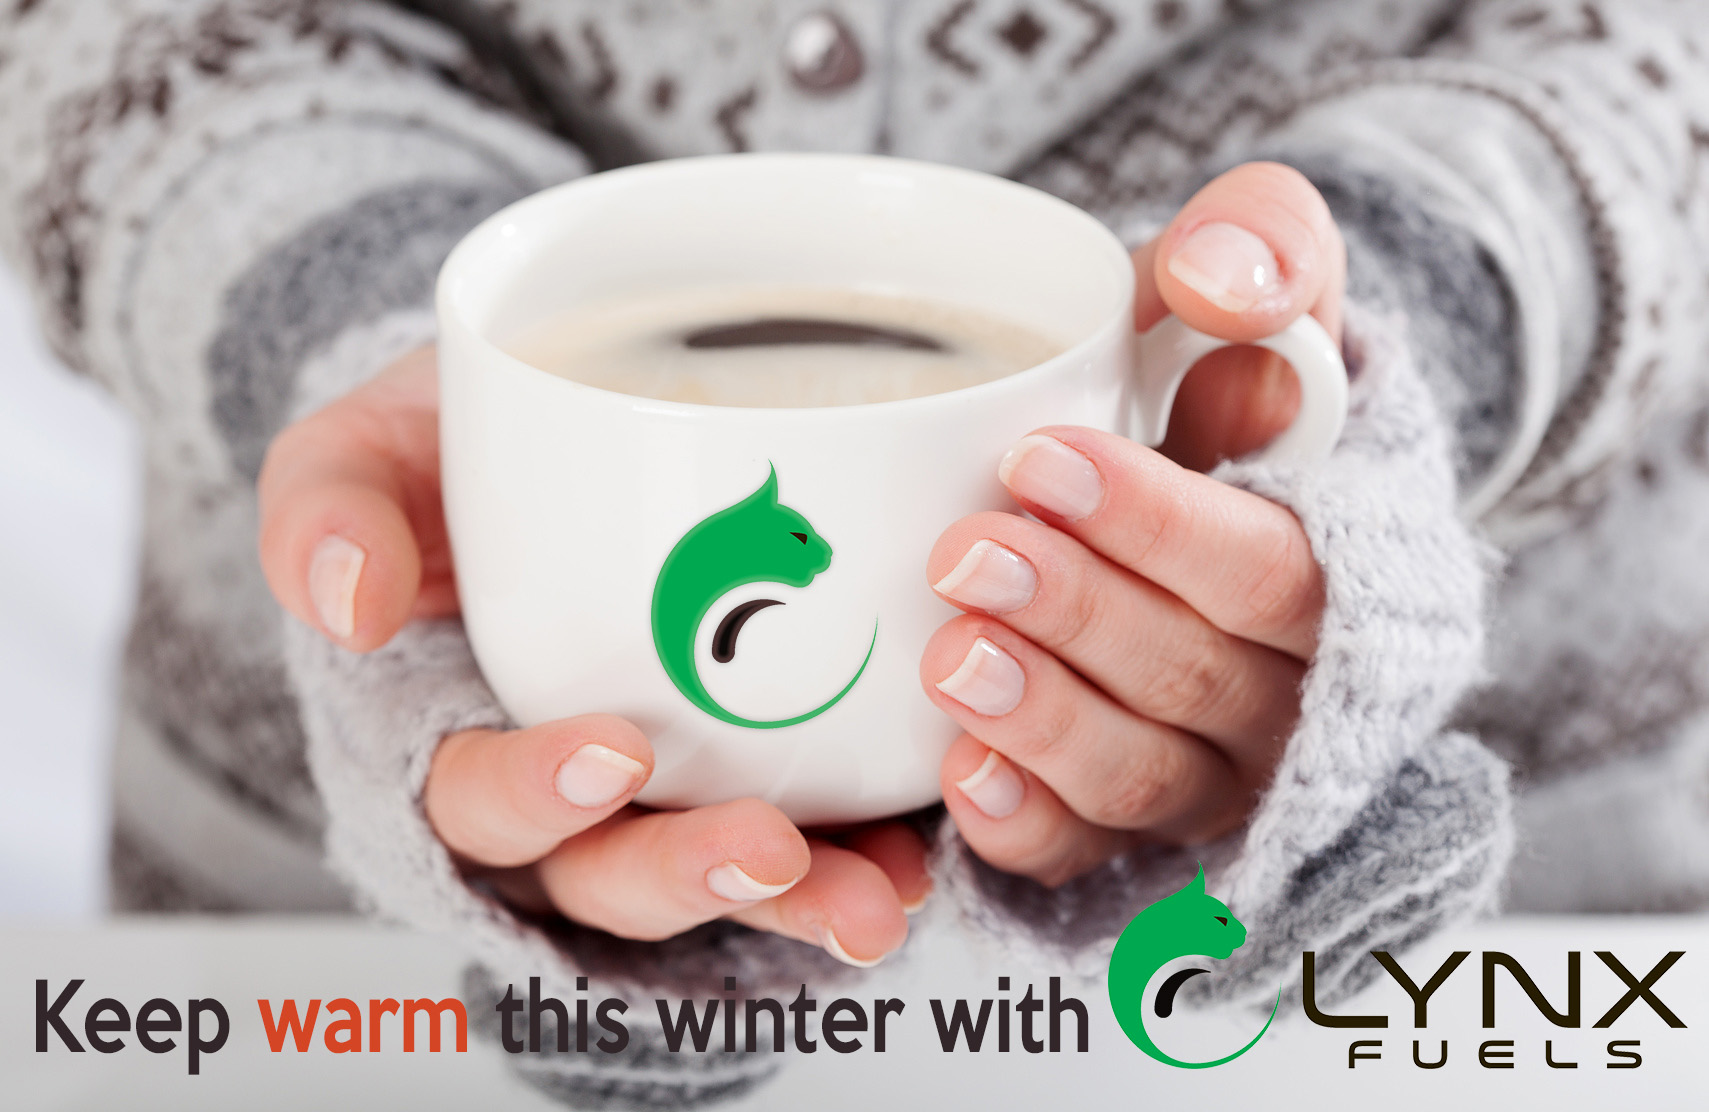 Keep Warm This Winter with Lynx Fuels!